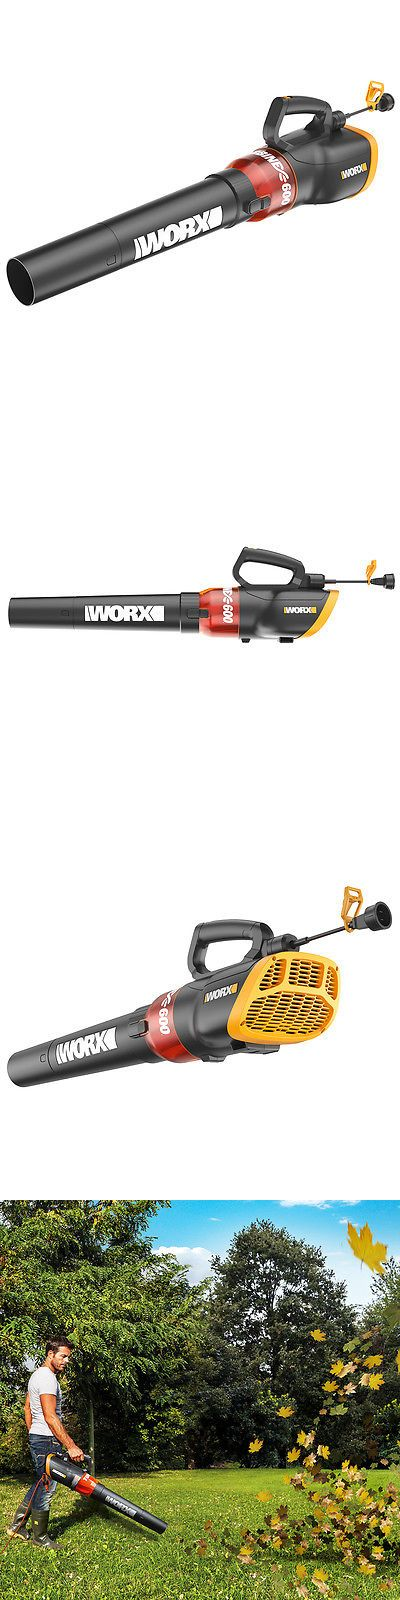 Leaf Blowers and Vacuums 71273: Worx Wg520 120-Volt 12-Amp 600 Cfm Lightweight Turbine Electric Leaf Blower -> BUY IT NOW ONLY: $52.39 on eBay!